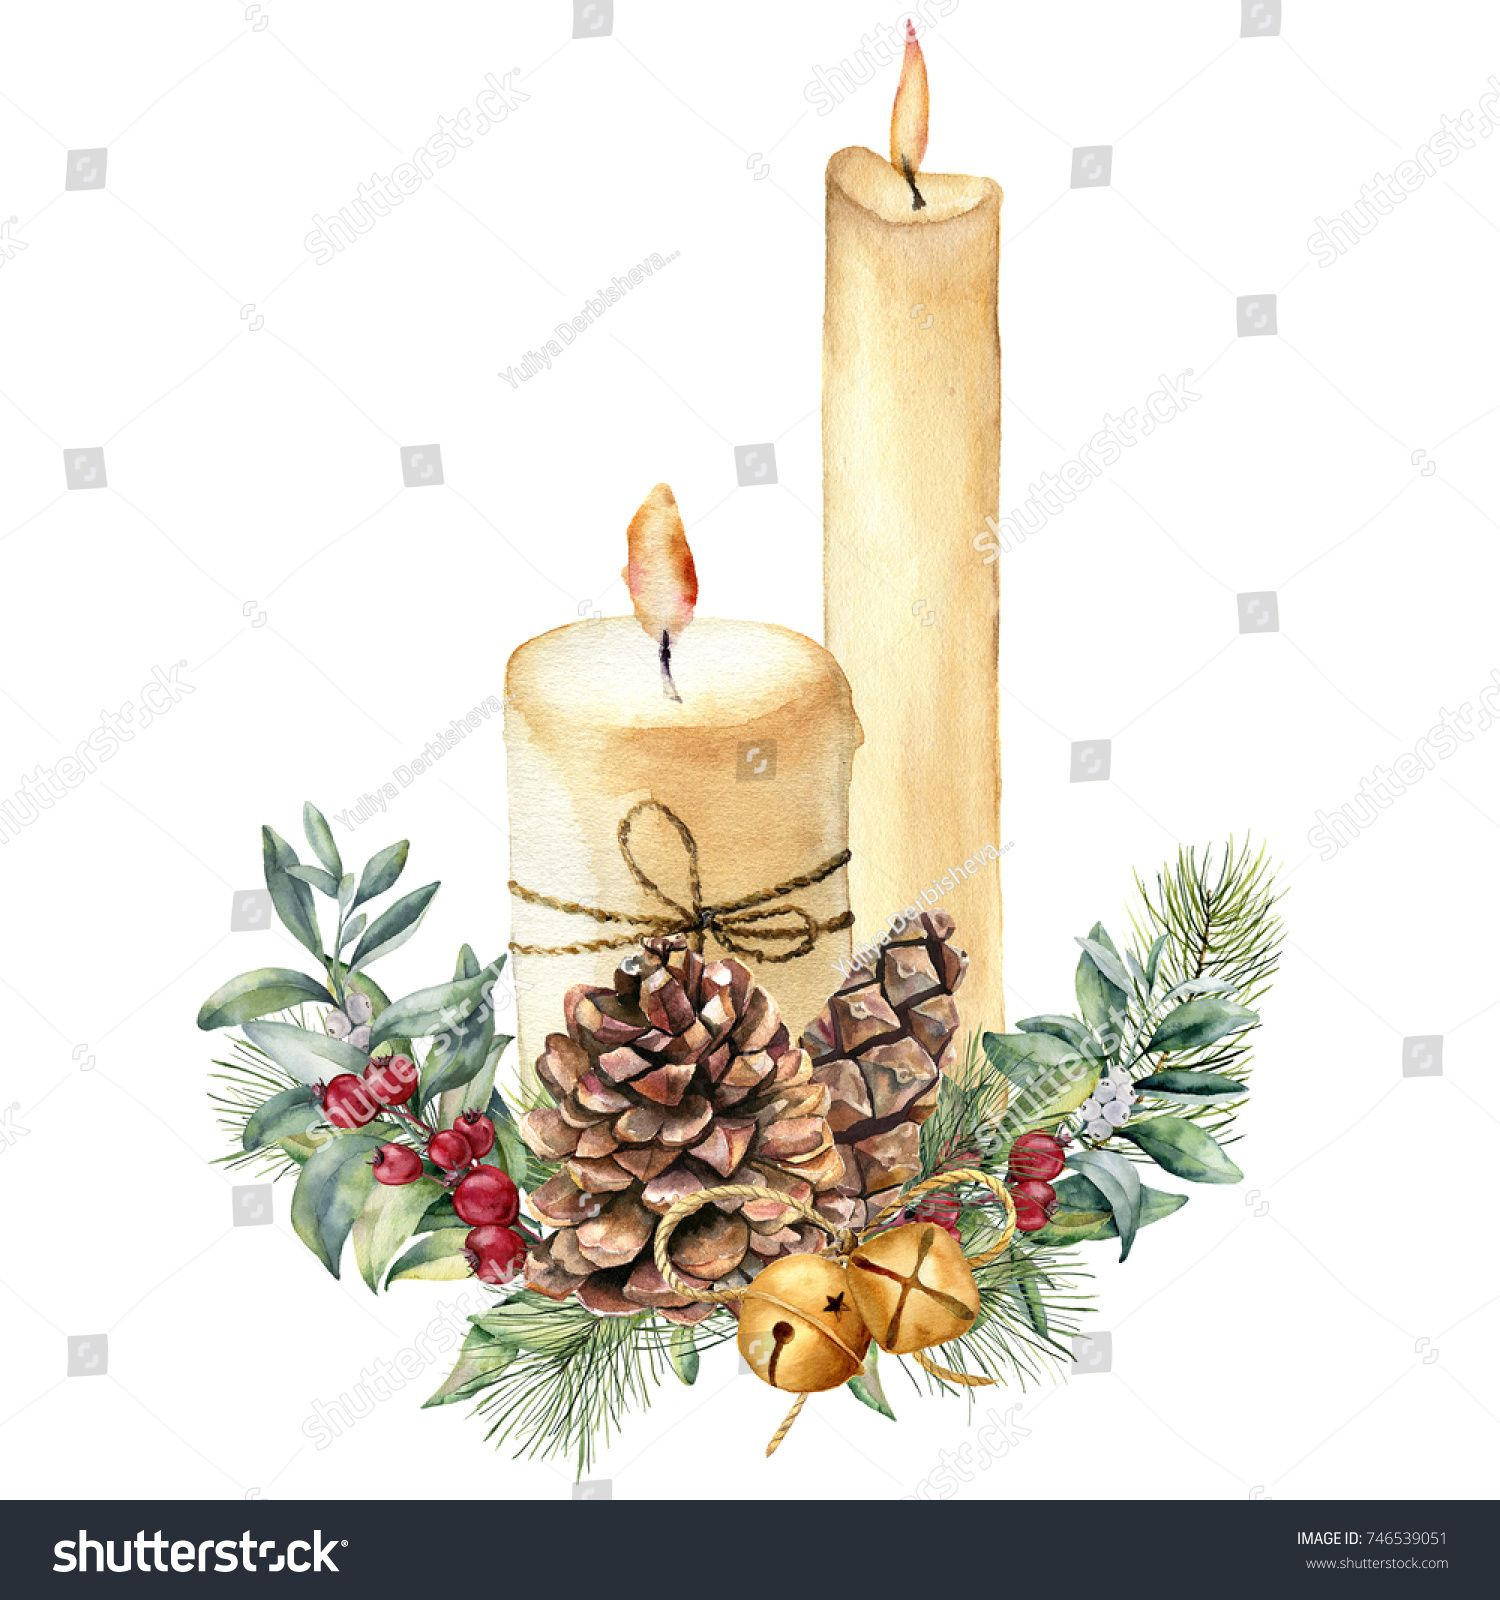 Watercolor Christmas candles with holiday decor. Hand